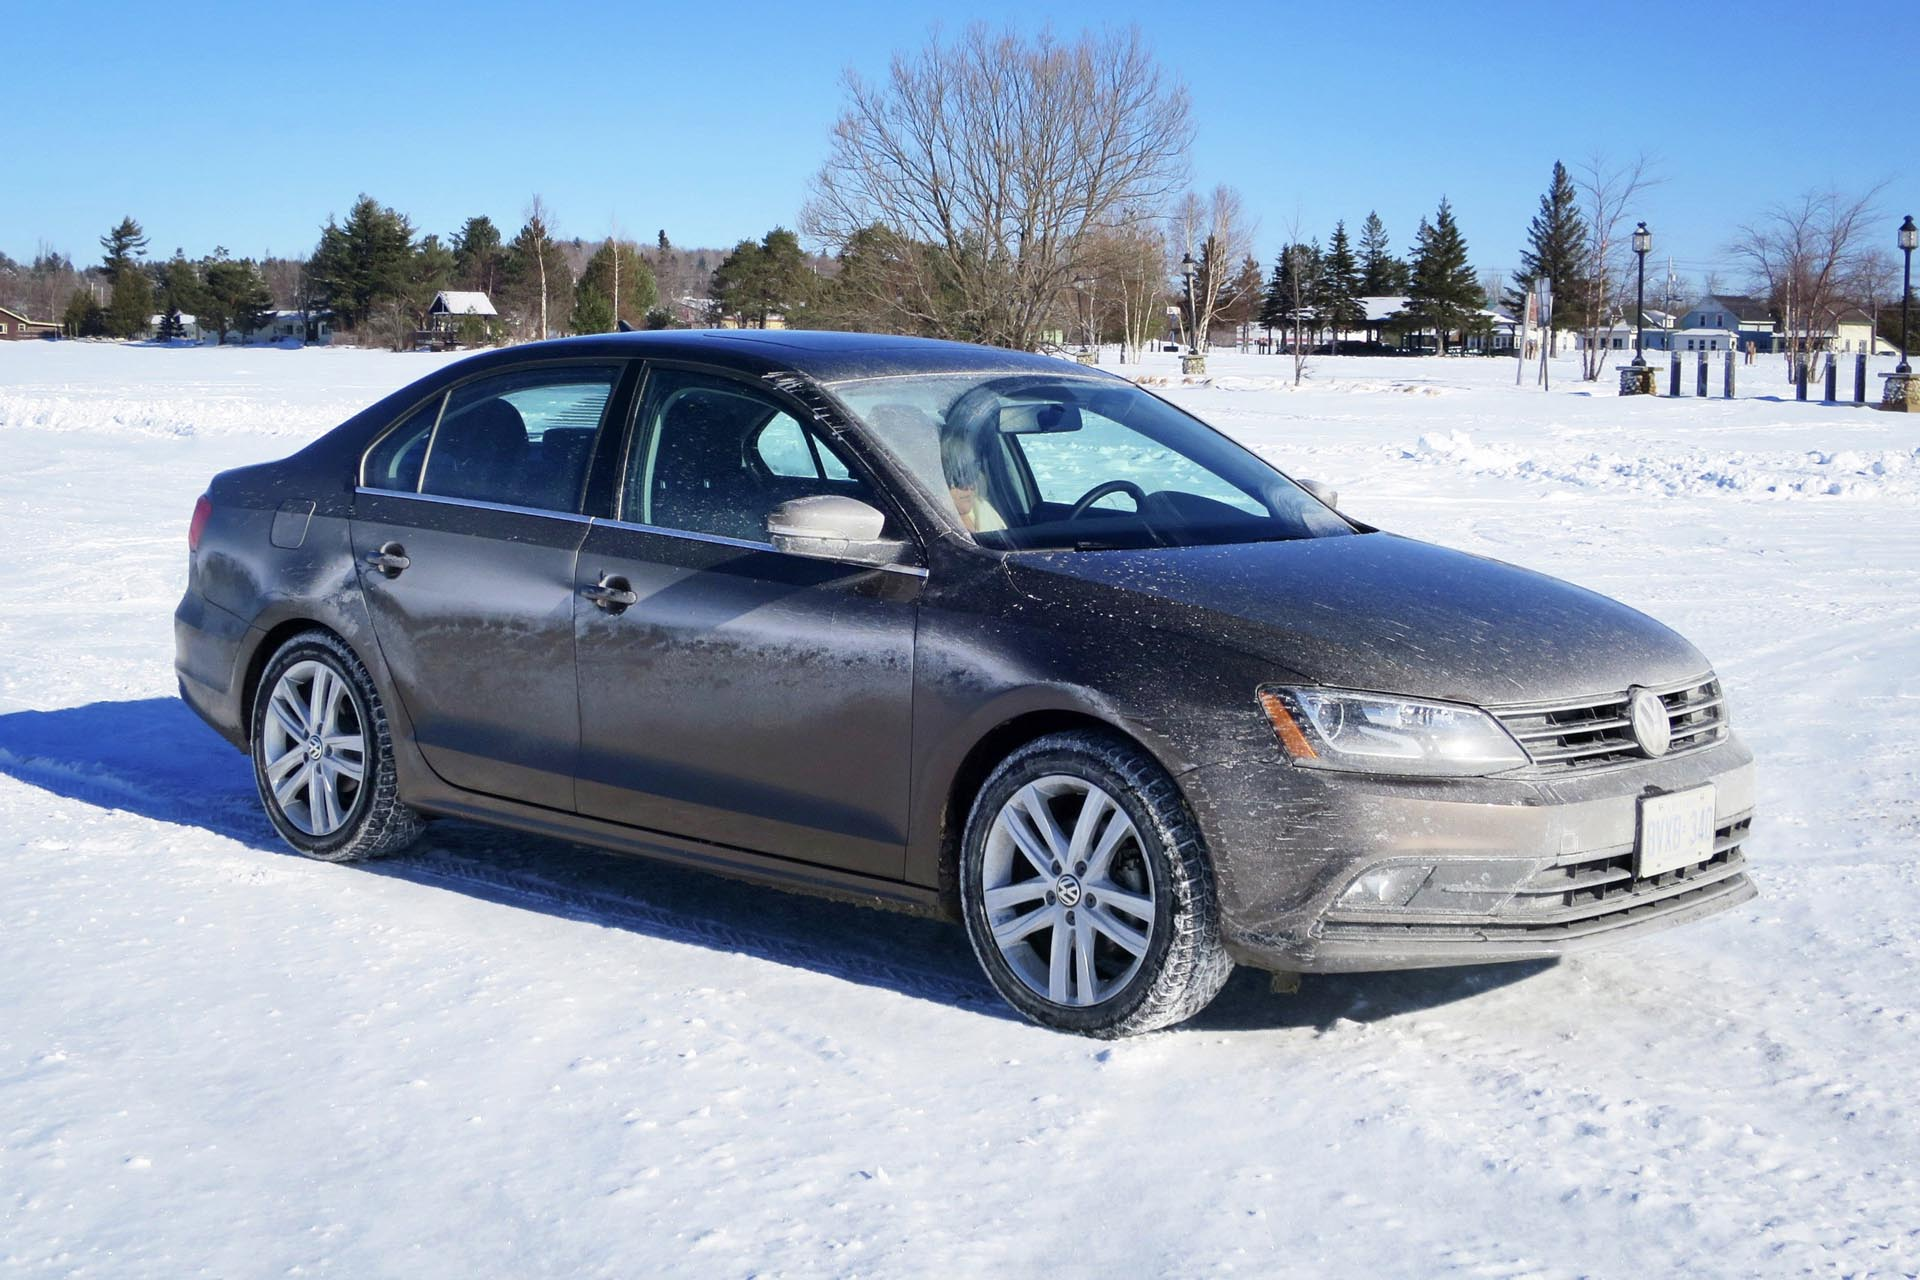 ex s features e loaded time new pin technology volkswagen by vw and is nf up uk to it luxurious co the with